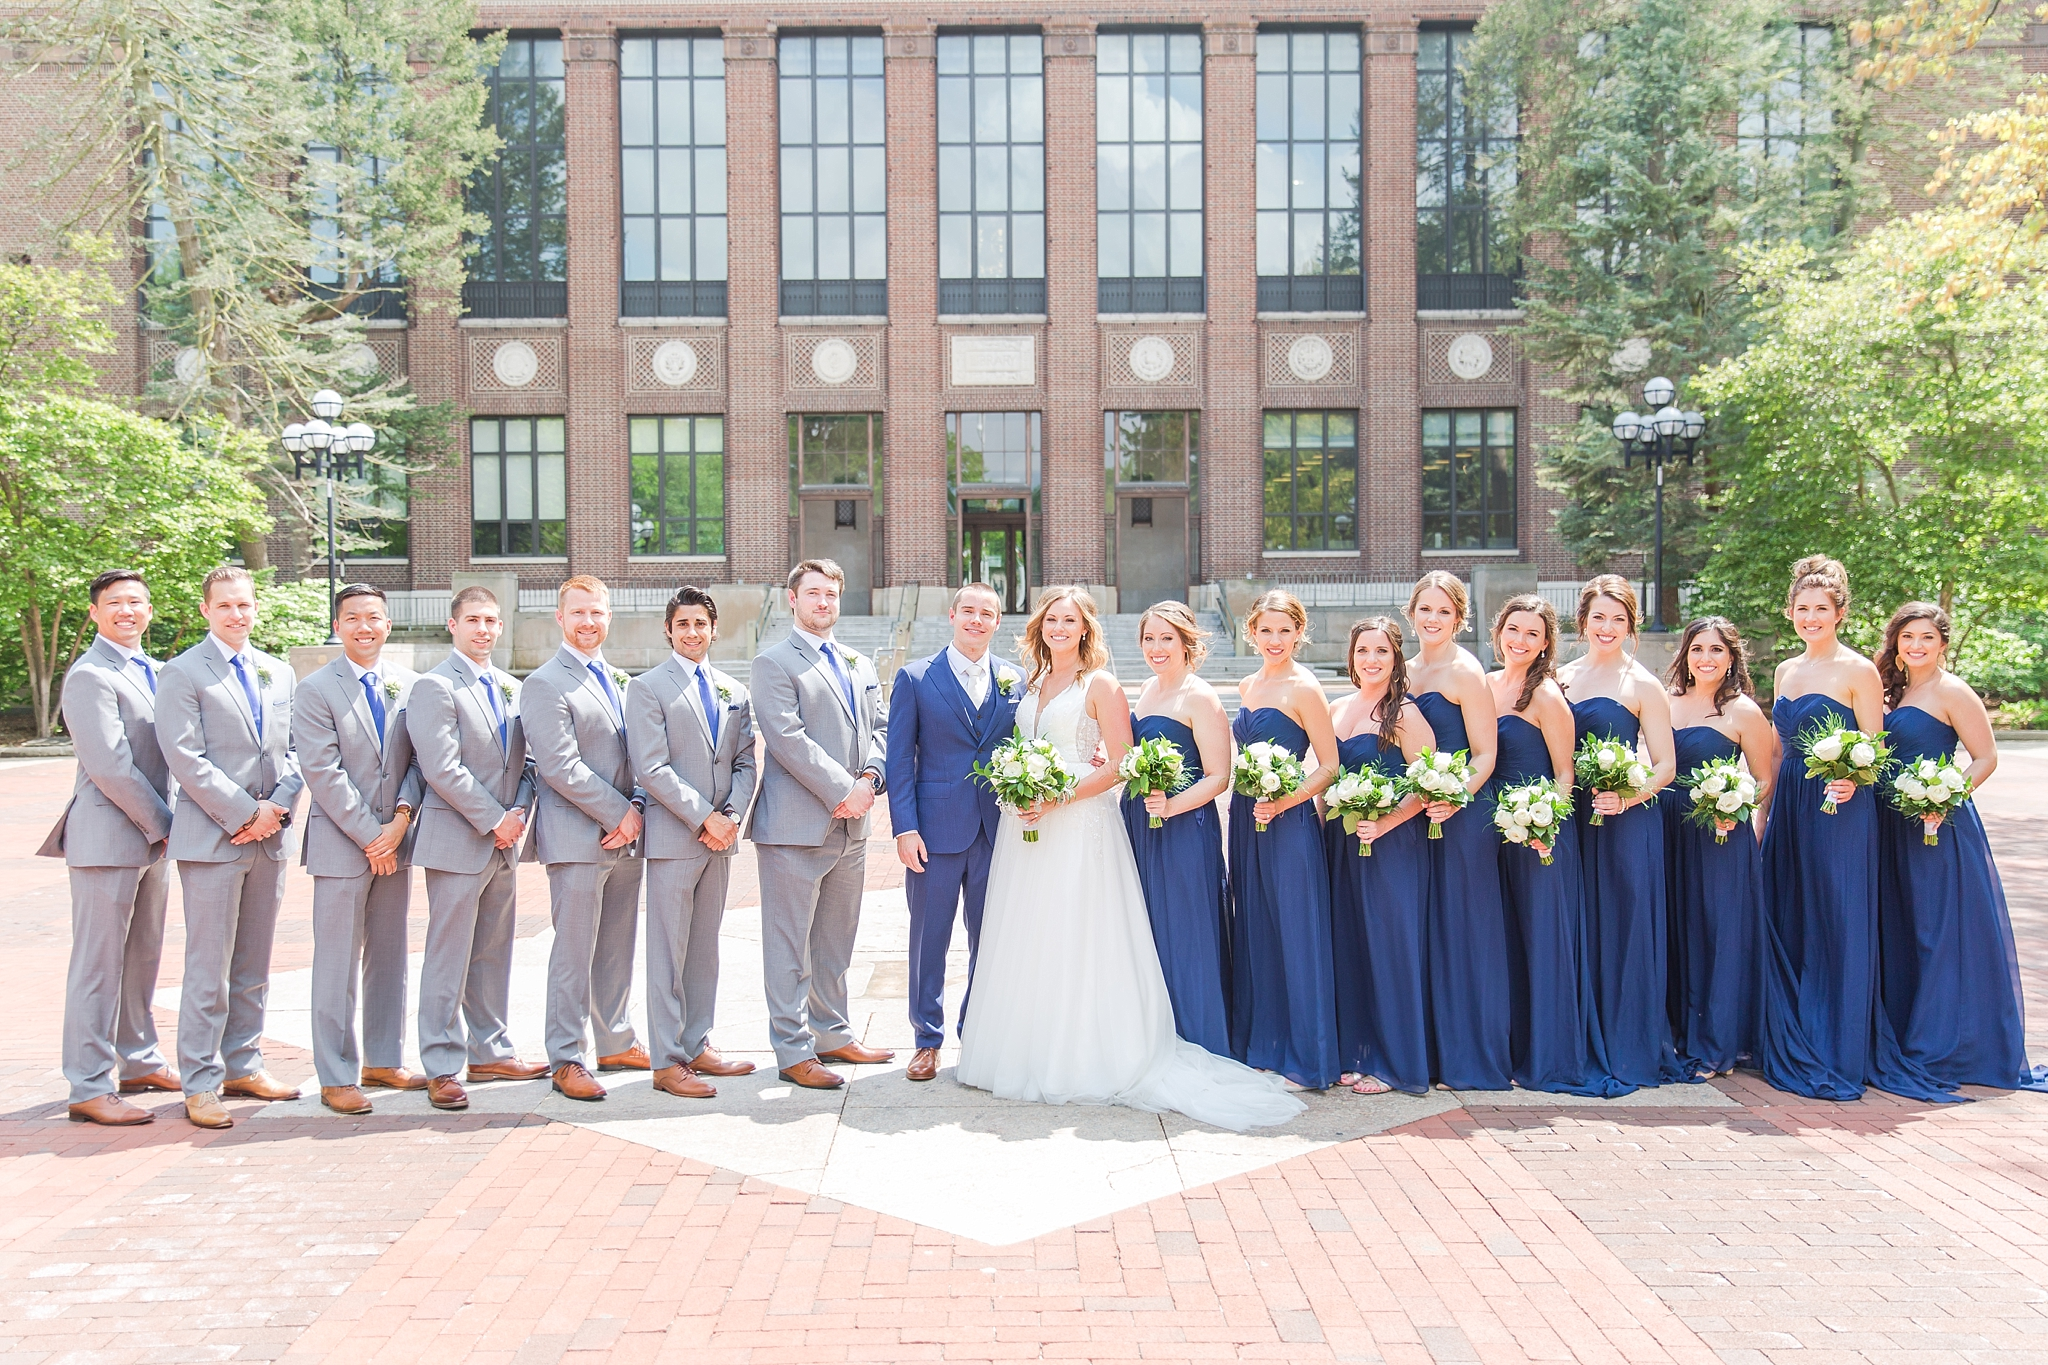 joyful-candid-laid-back-wedding-photos-in-ann-arbor-michigan-and-at-the-eagle-crest-golf-resort-by-courtney-carolyn-photography_0053.jpg